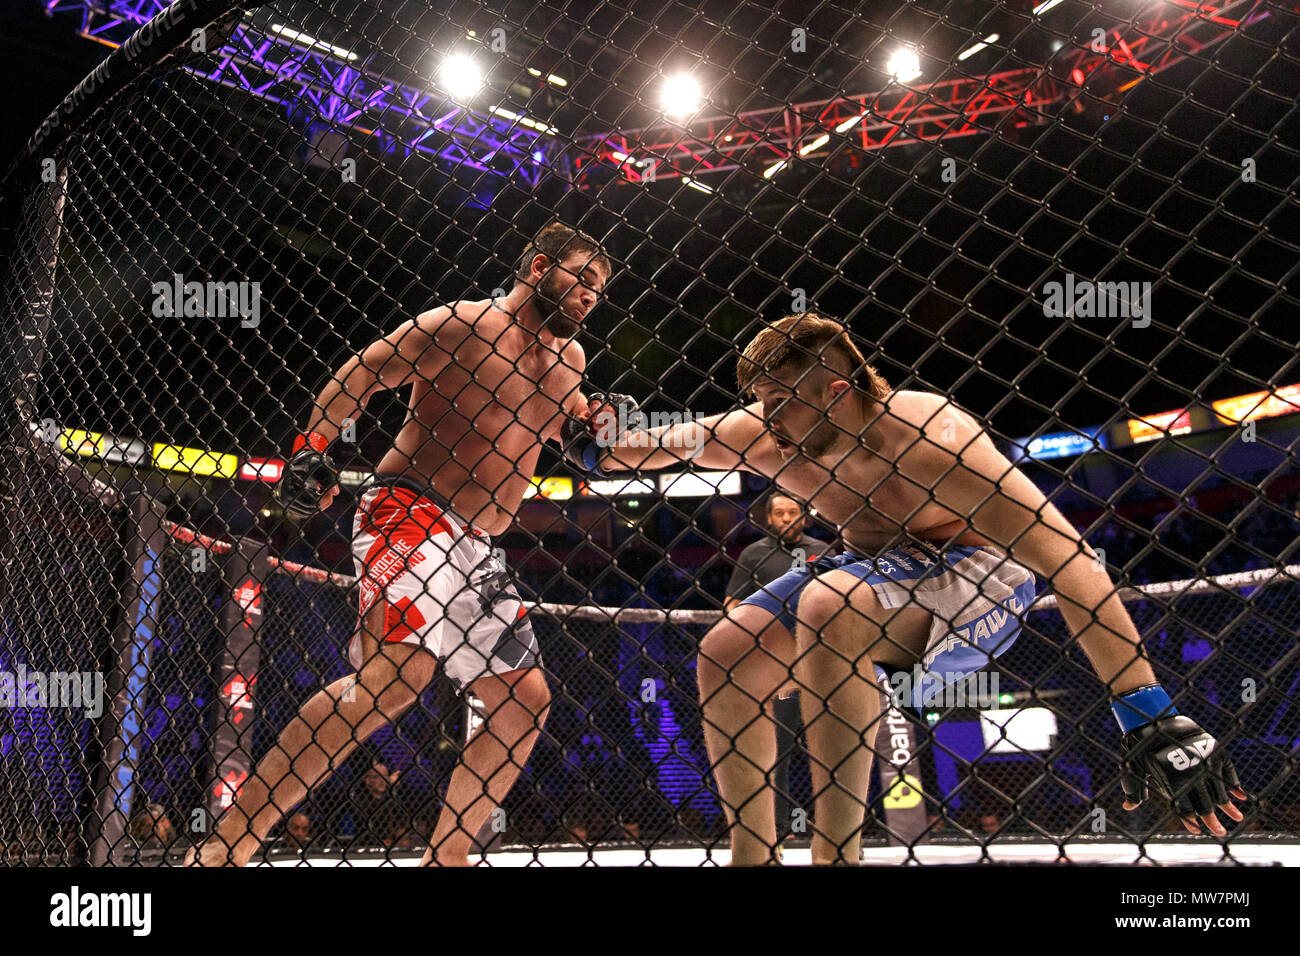 Mukhomad Vakhaev (left) rocks Tanner Boser with a punch at ACB 54 in